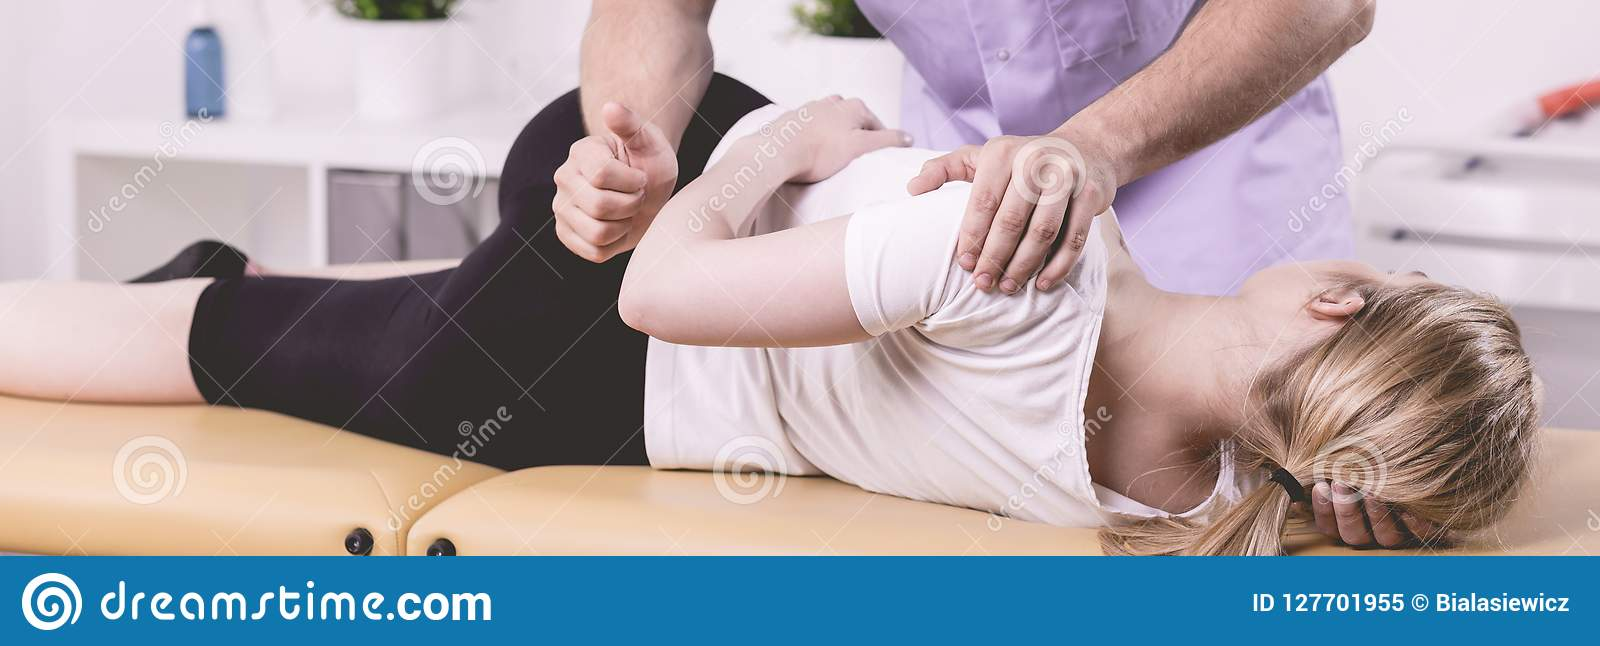 Patient and physiotherapist during rehabilitation in the hospital